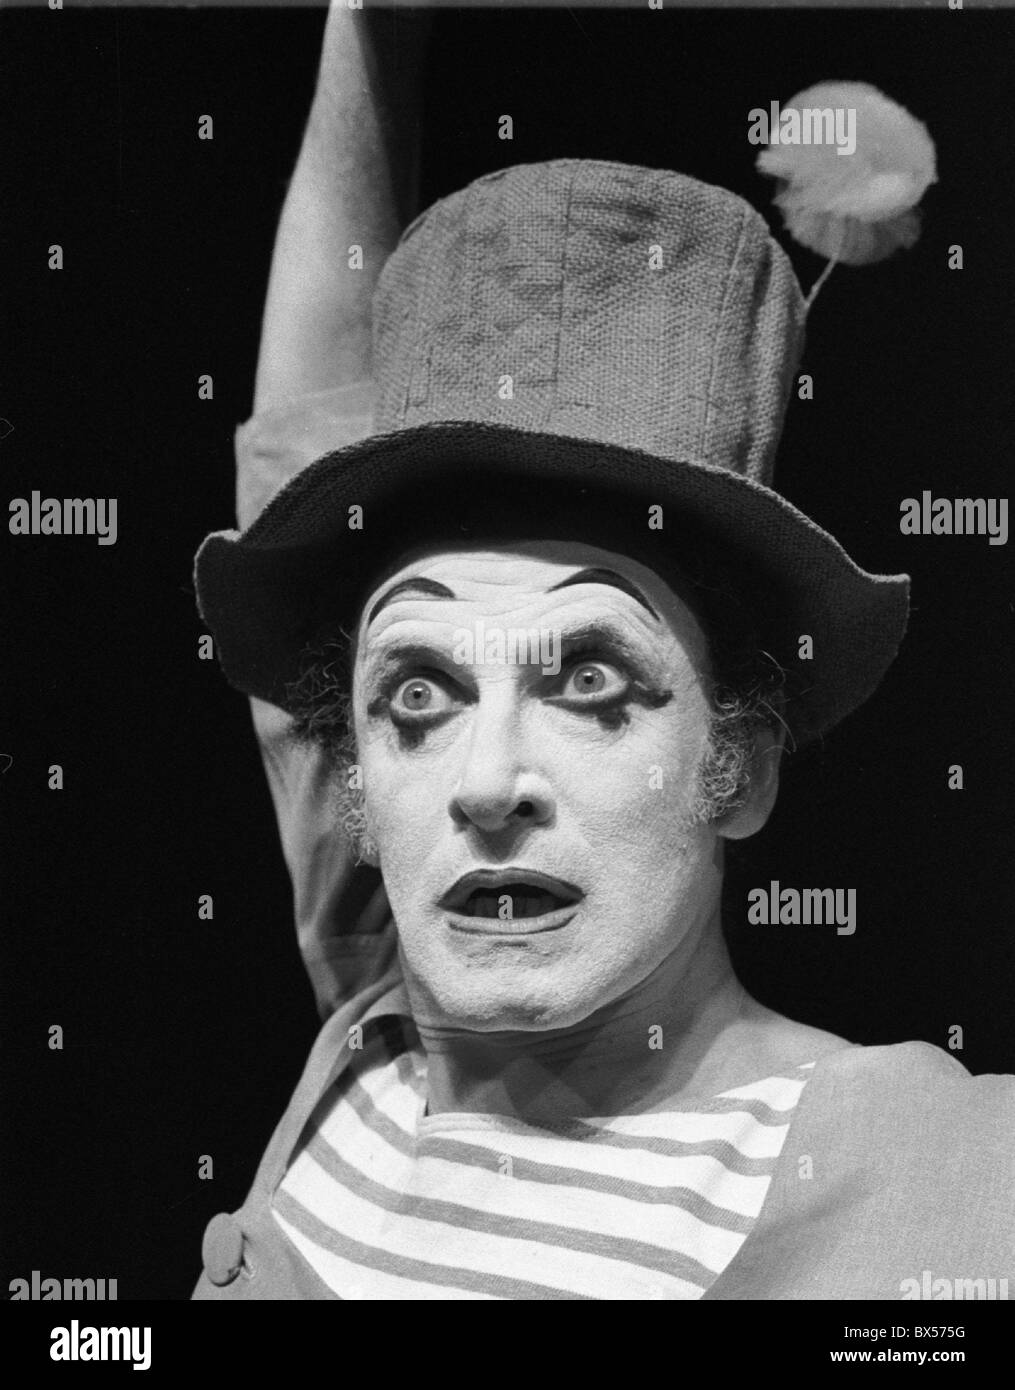 French actor and mime Marcel Marceau performing in Prague, June 1967. CTK Photo/Oldrich Picha Stock Photo